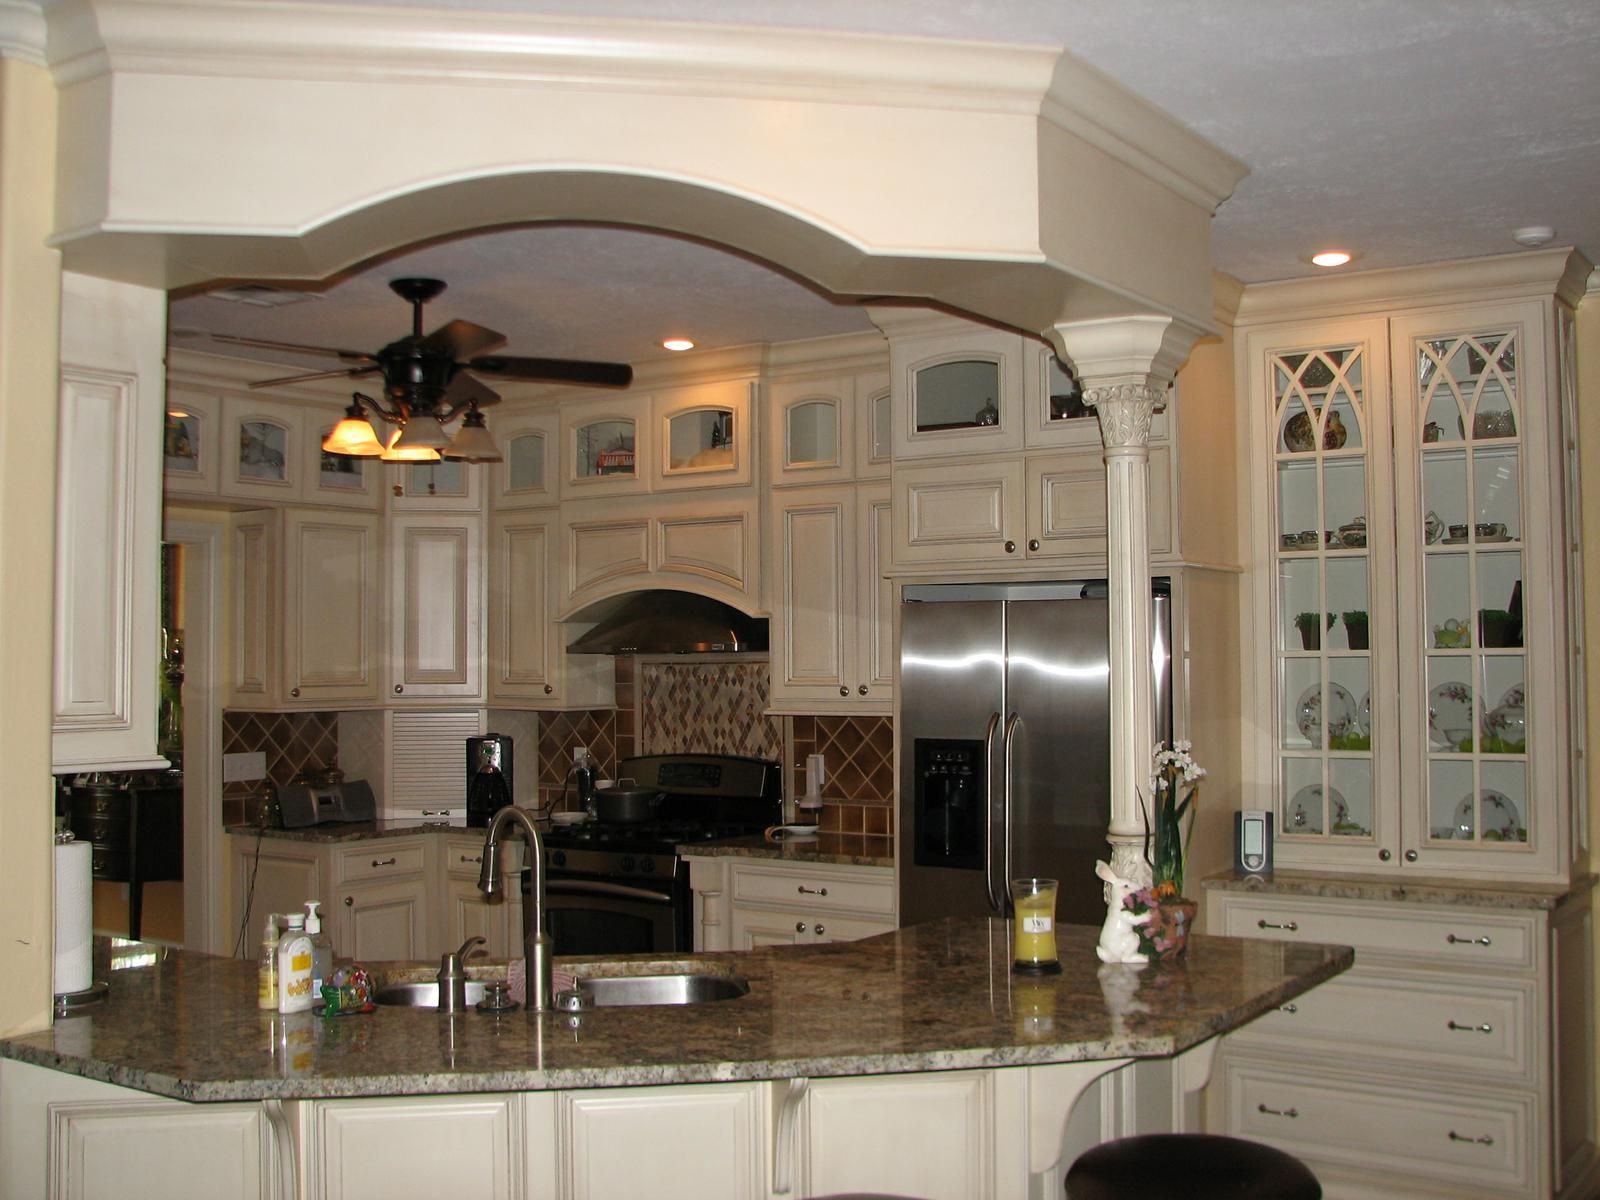 Custom Painted And Glazed Kitchen By Rhodes Woodworking